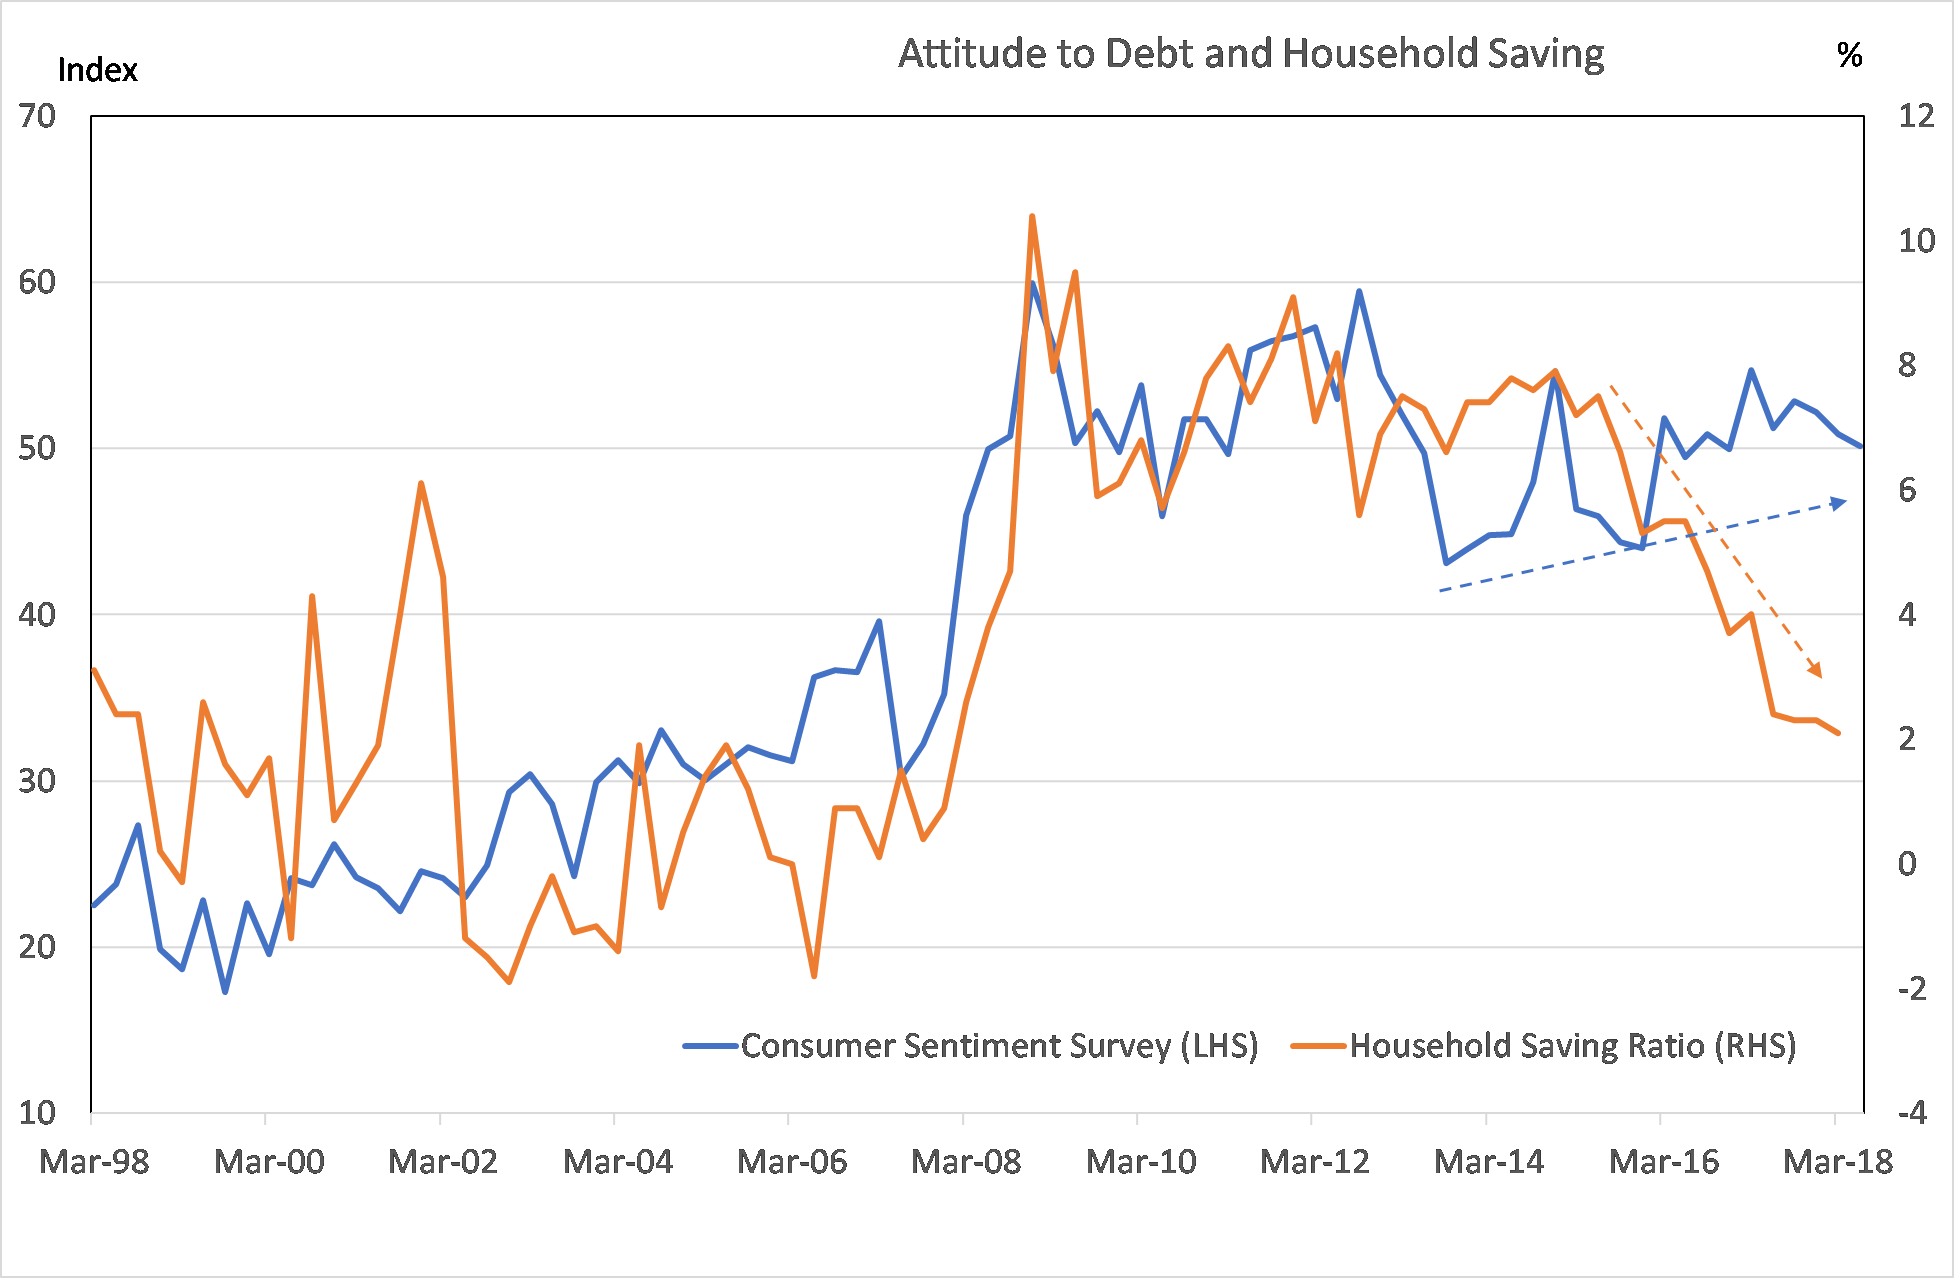 Consumer attitude to debt and household saving rate